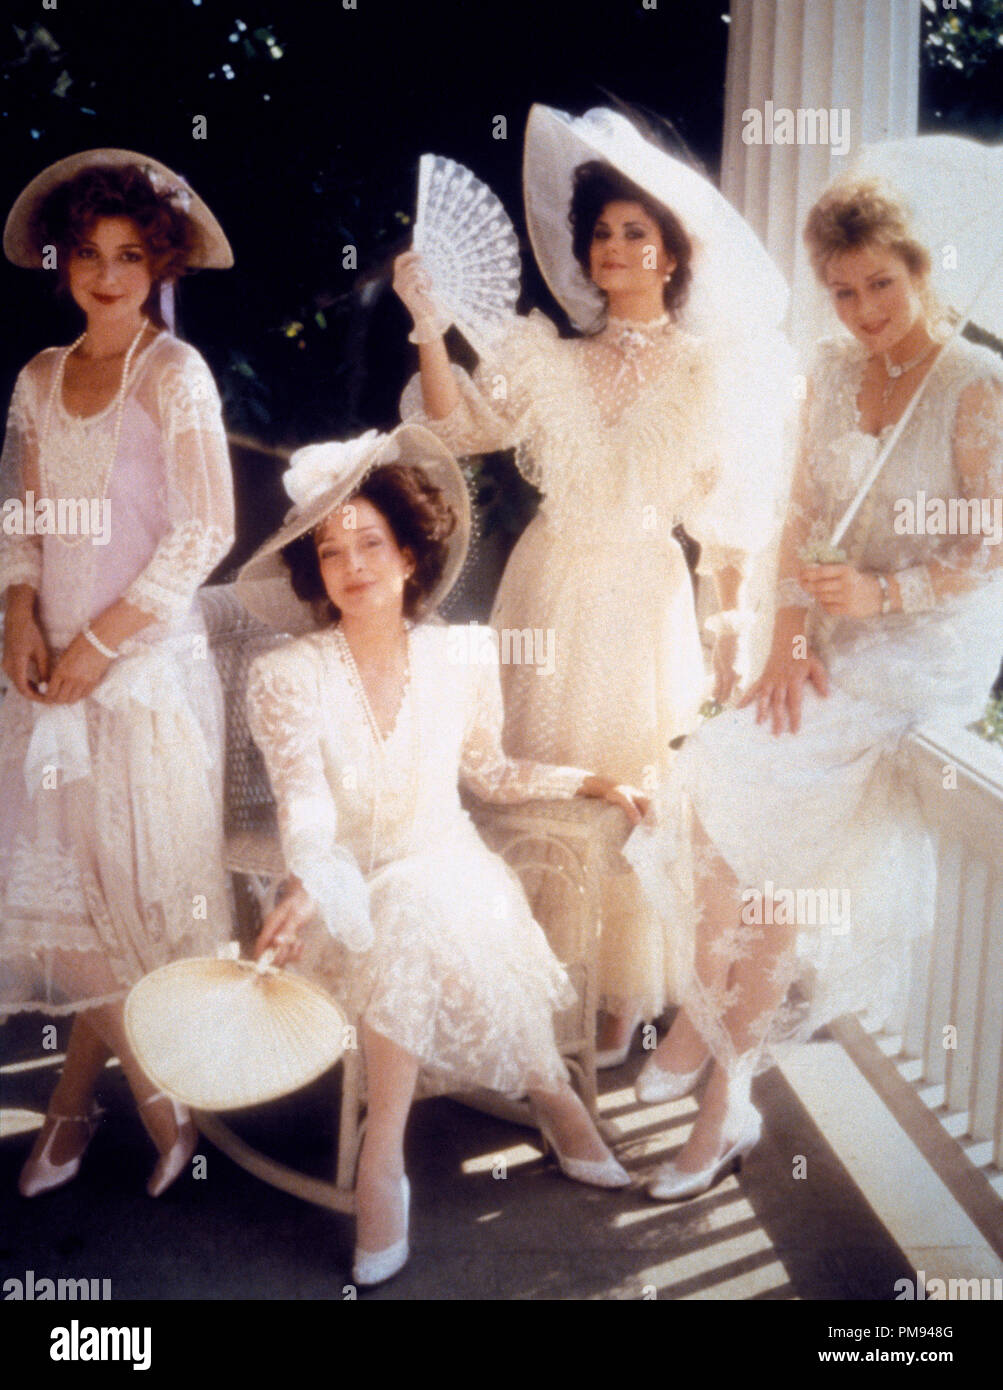 Studio Publicity Still From Designing Women Annie Potts Dixie Carter Jean Smart Delta Burke Circa 1987 All Rights Reserved File Reference 31697280tha For Editorial Use Only Stock Photo Alamy,Quilted Christmas Tree Wall Hanging